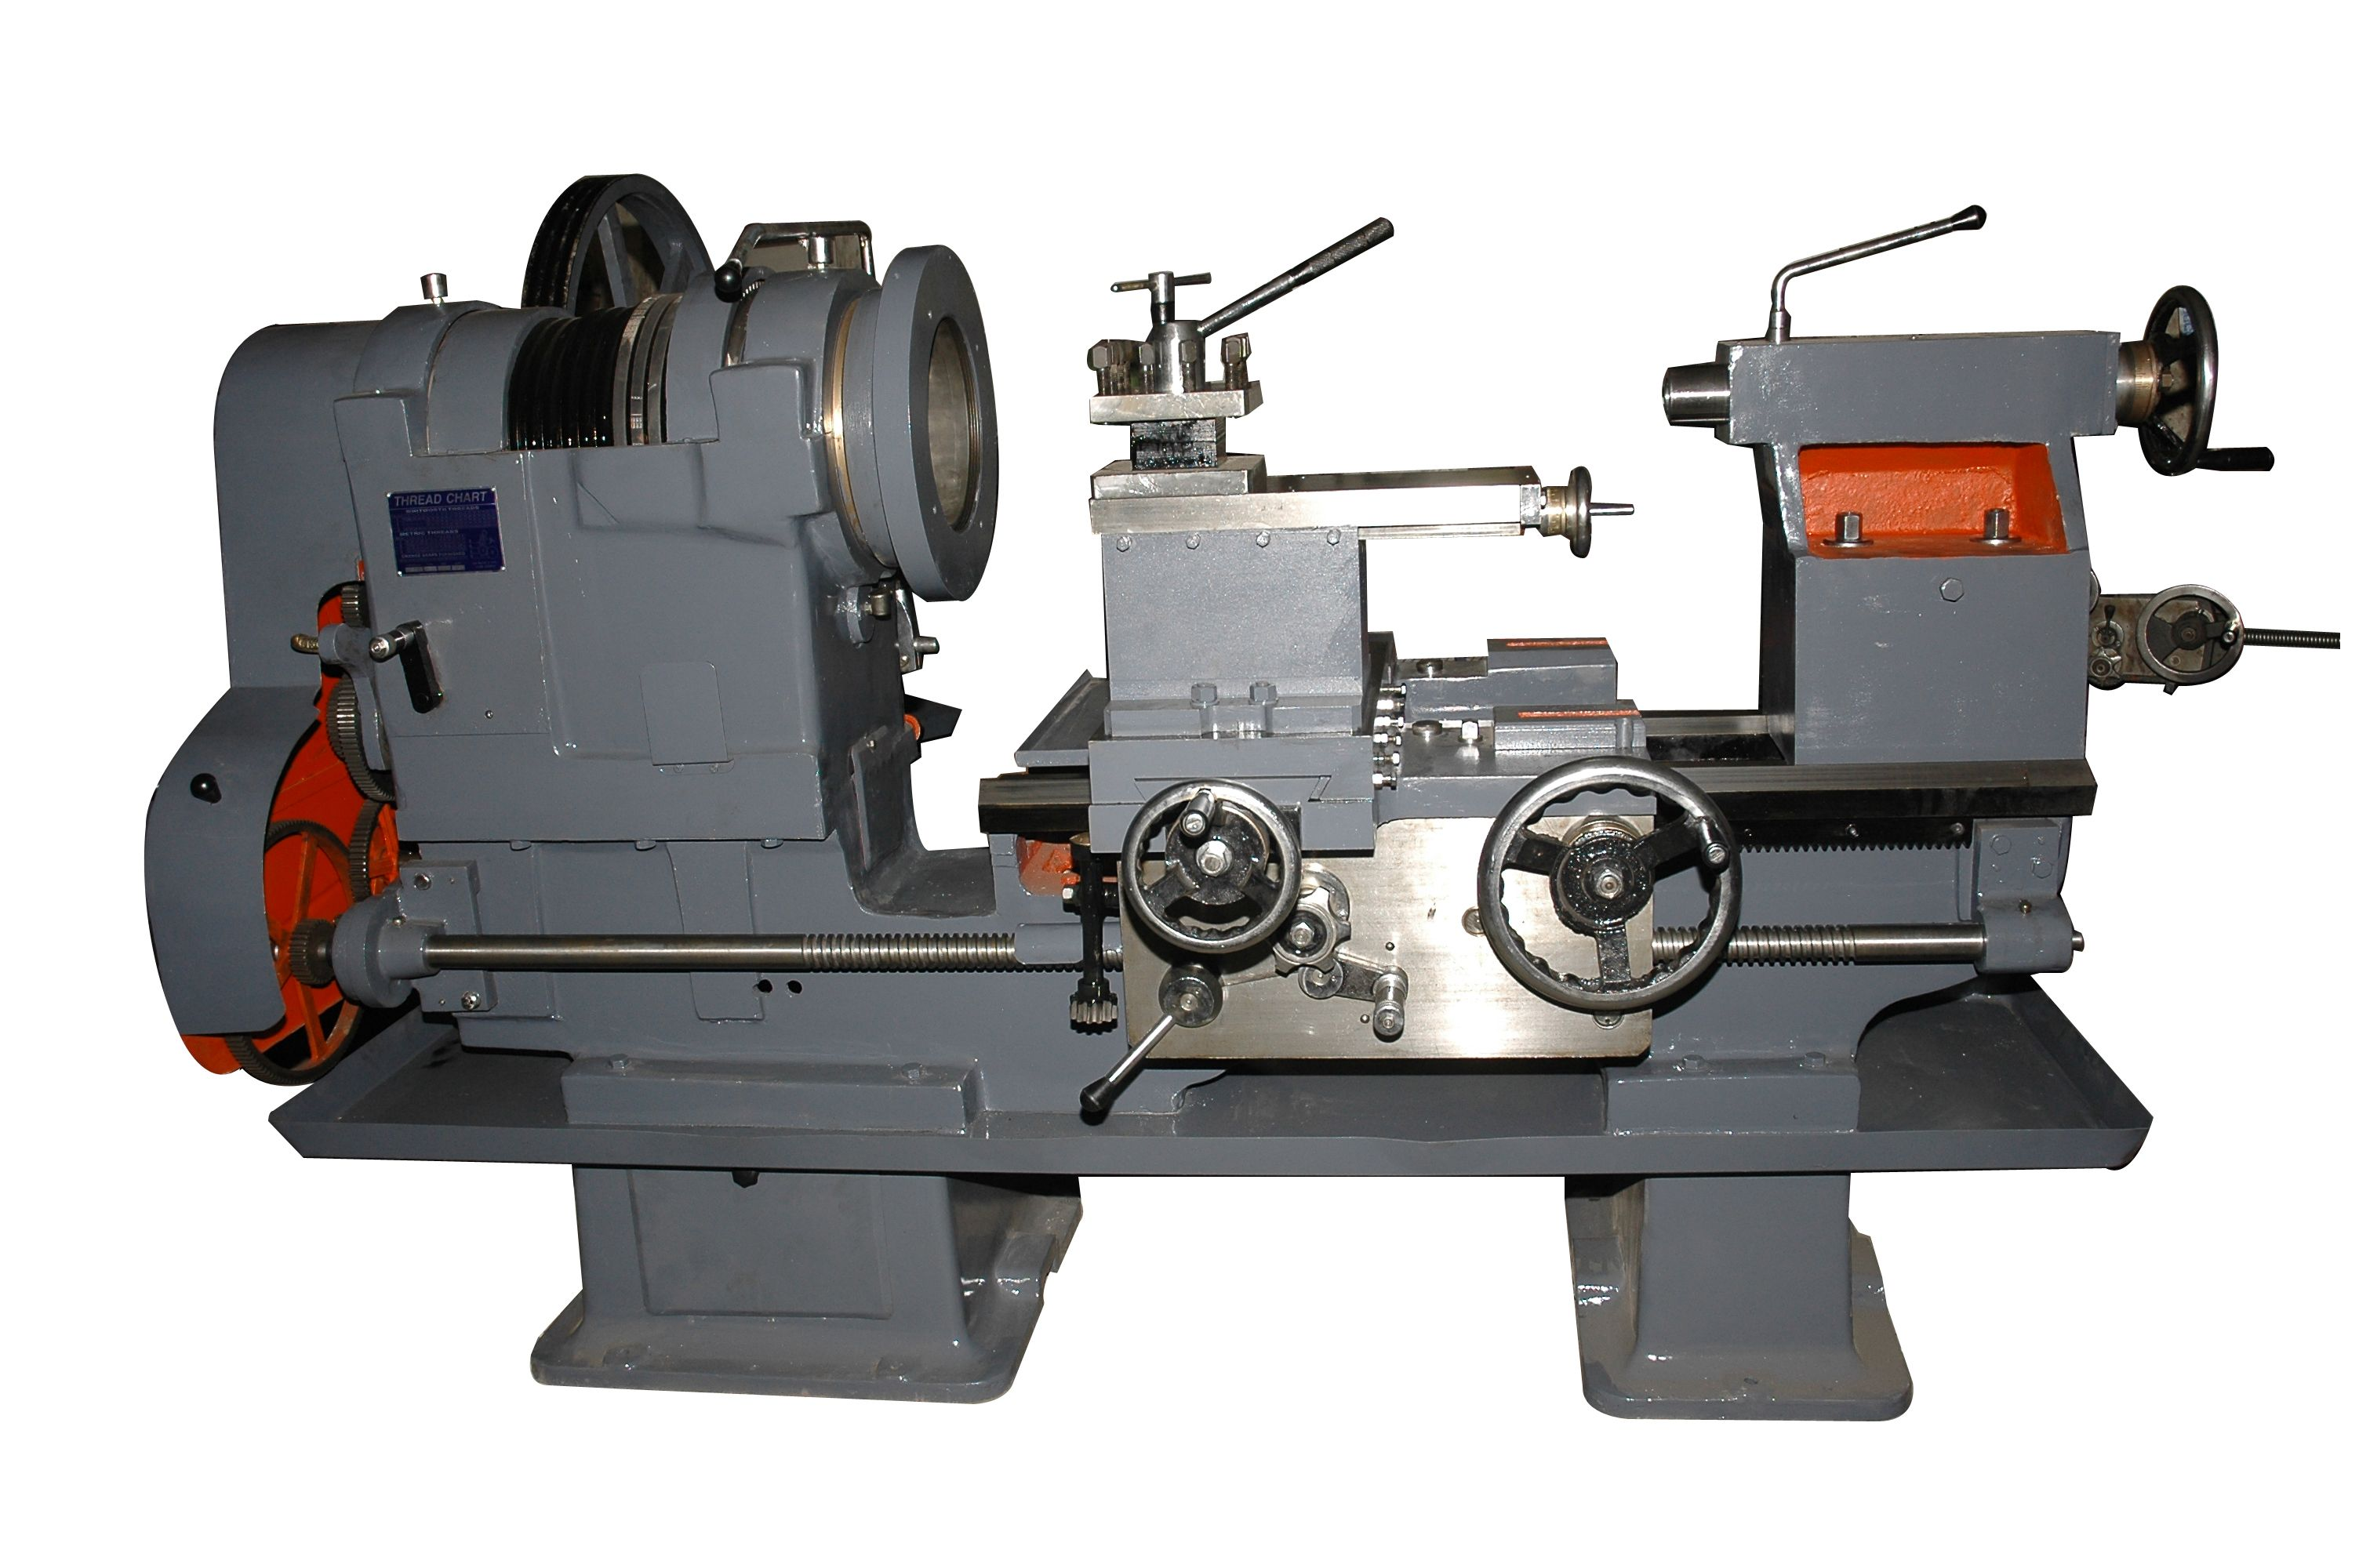 Lathe Machine | pic to see in 2019 | Lathe machine, Lathe